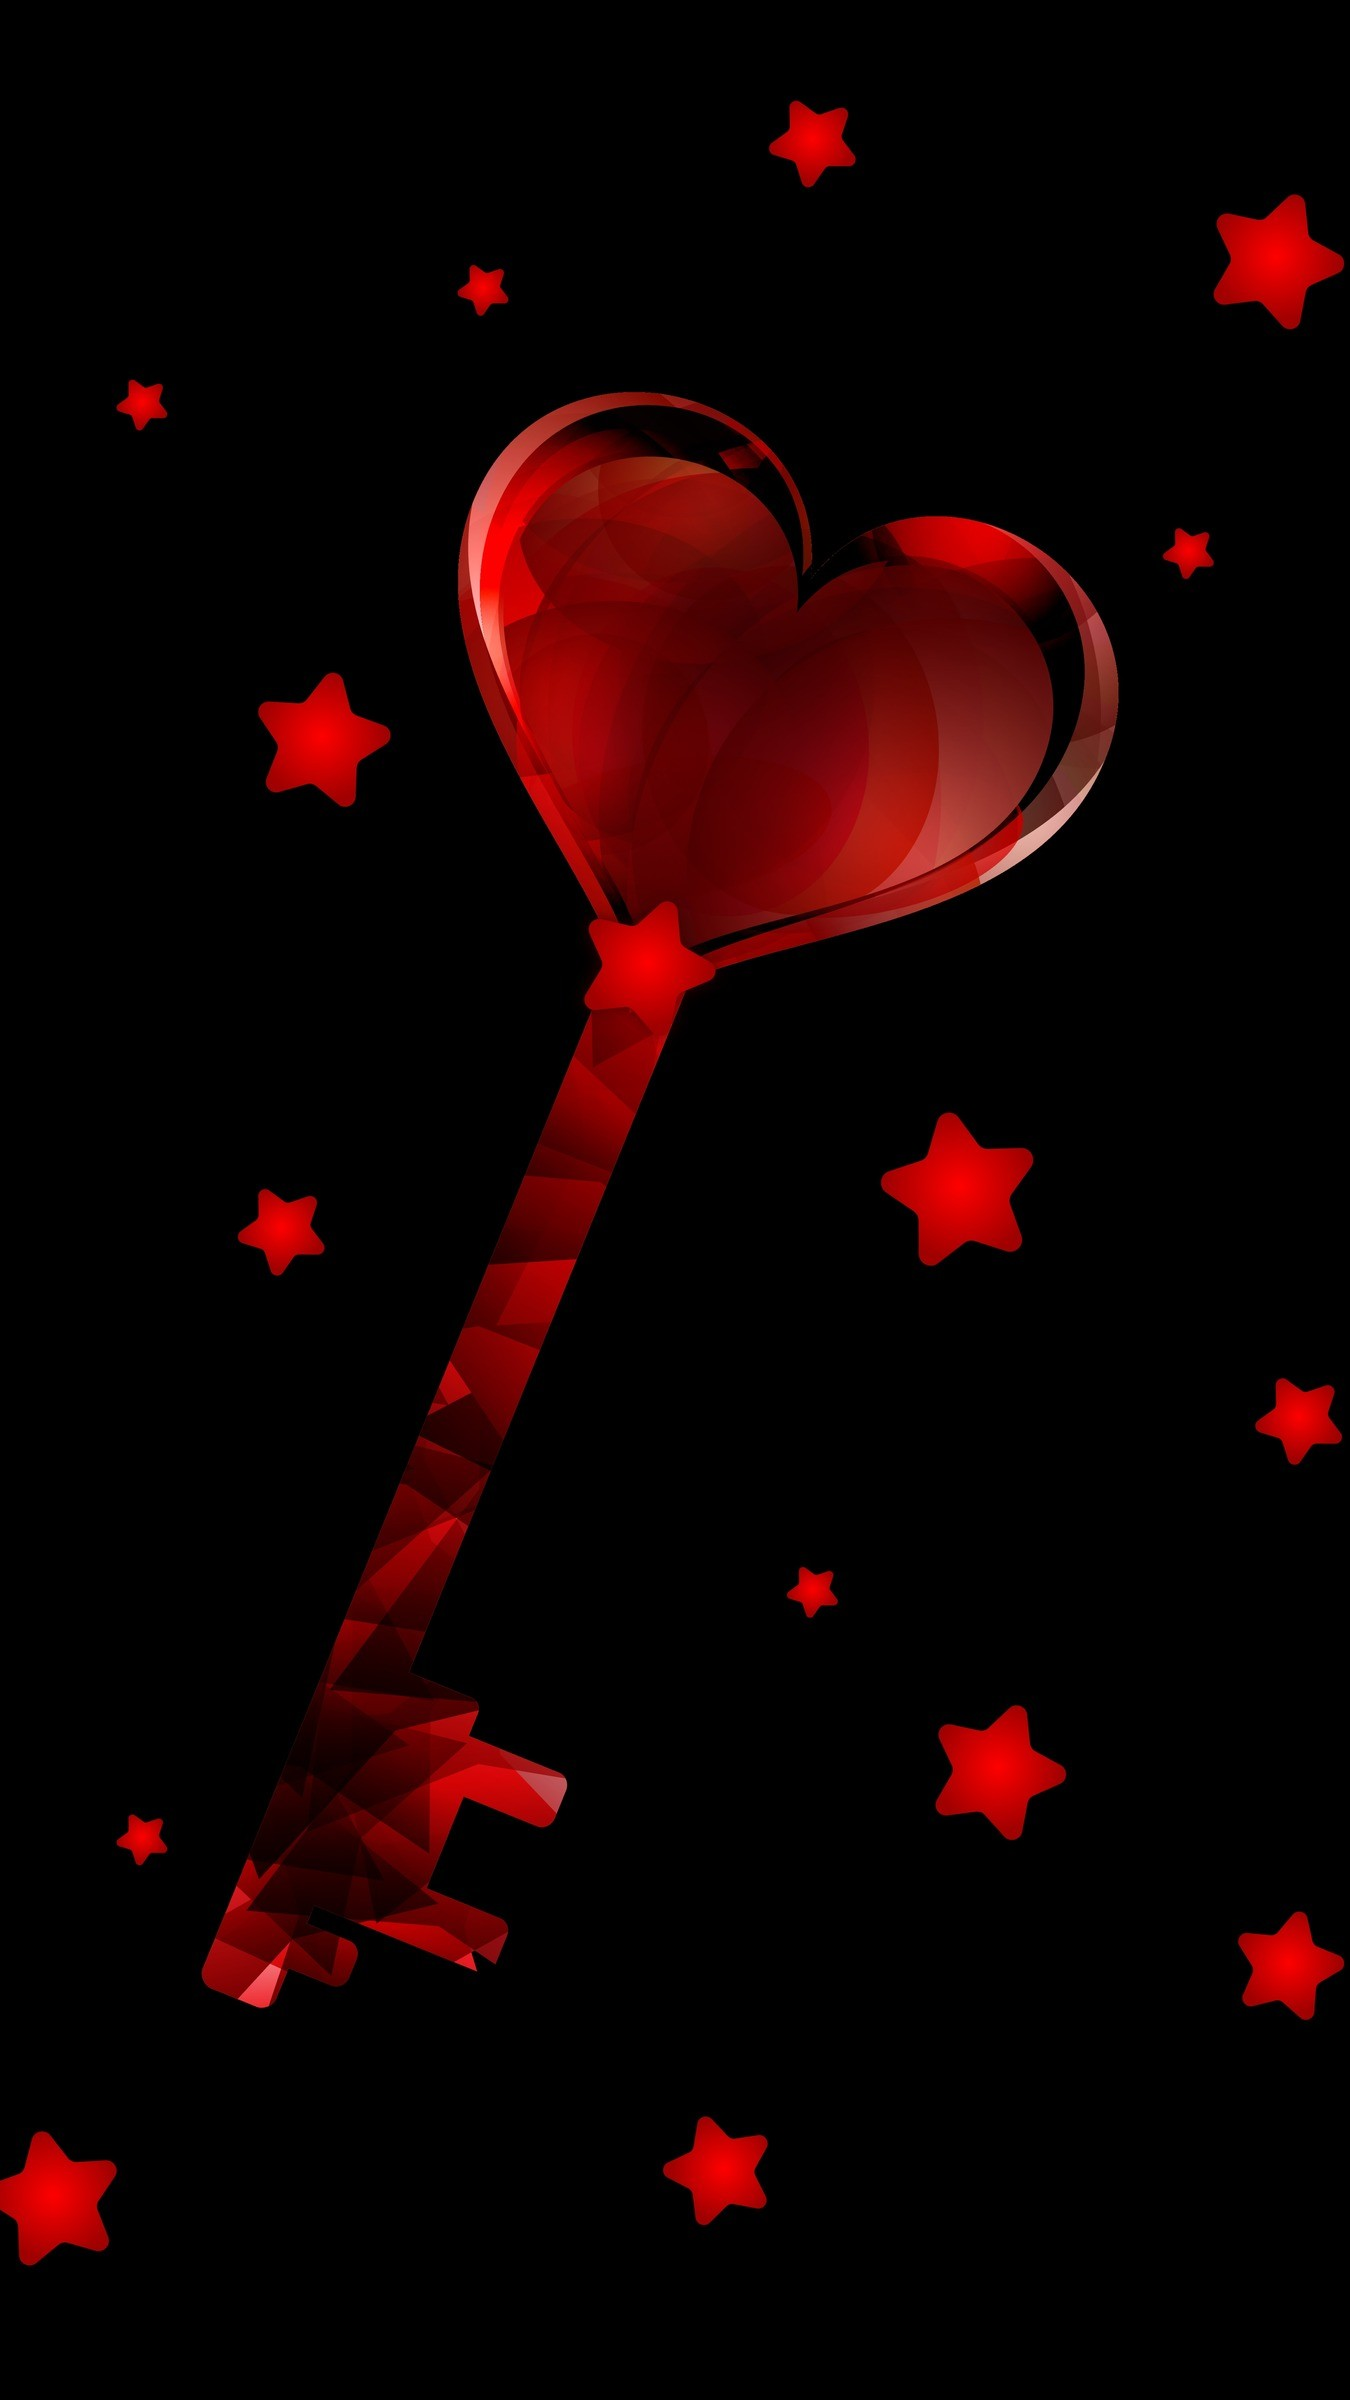 Res: 1350x2400,  Wallpaper key, love, heart, stars, red